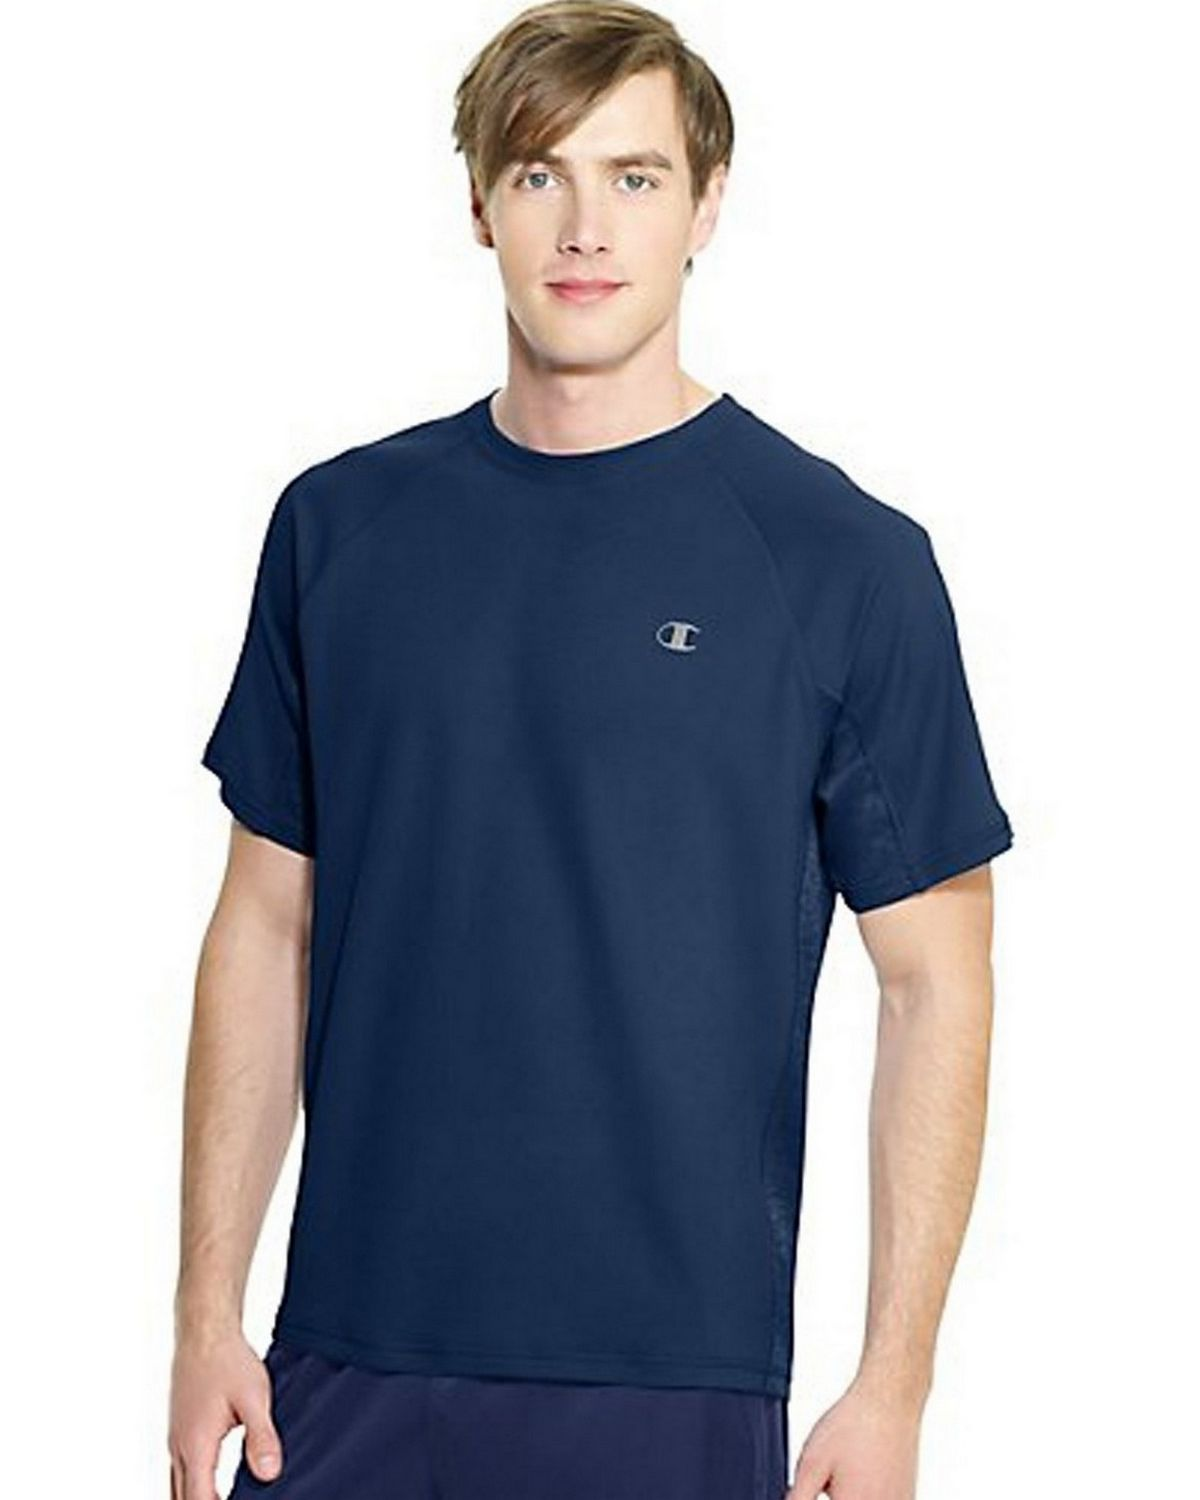 Champion T6608 Vapor PowerTrain Colorblock Tee - Navy - S T6608